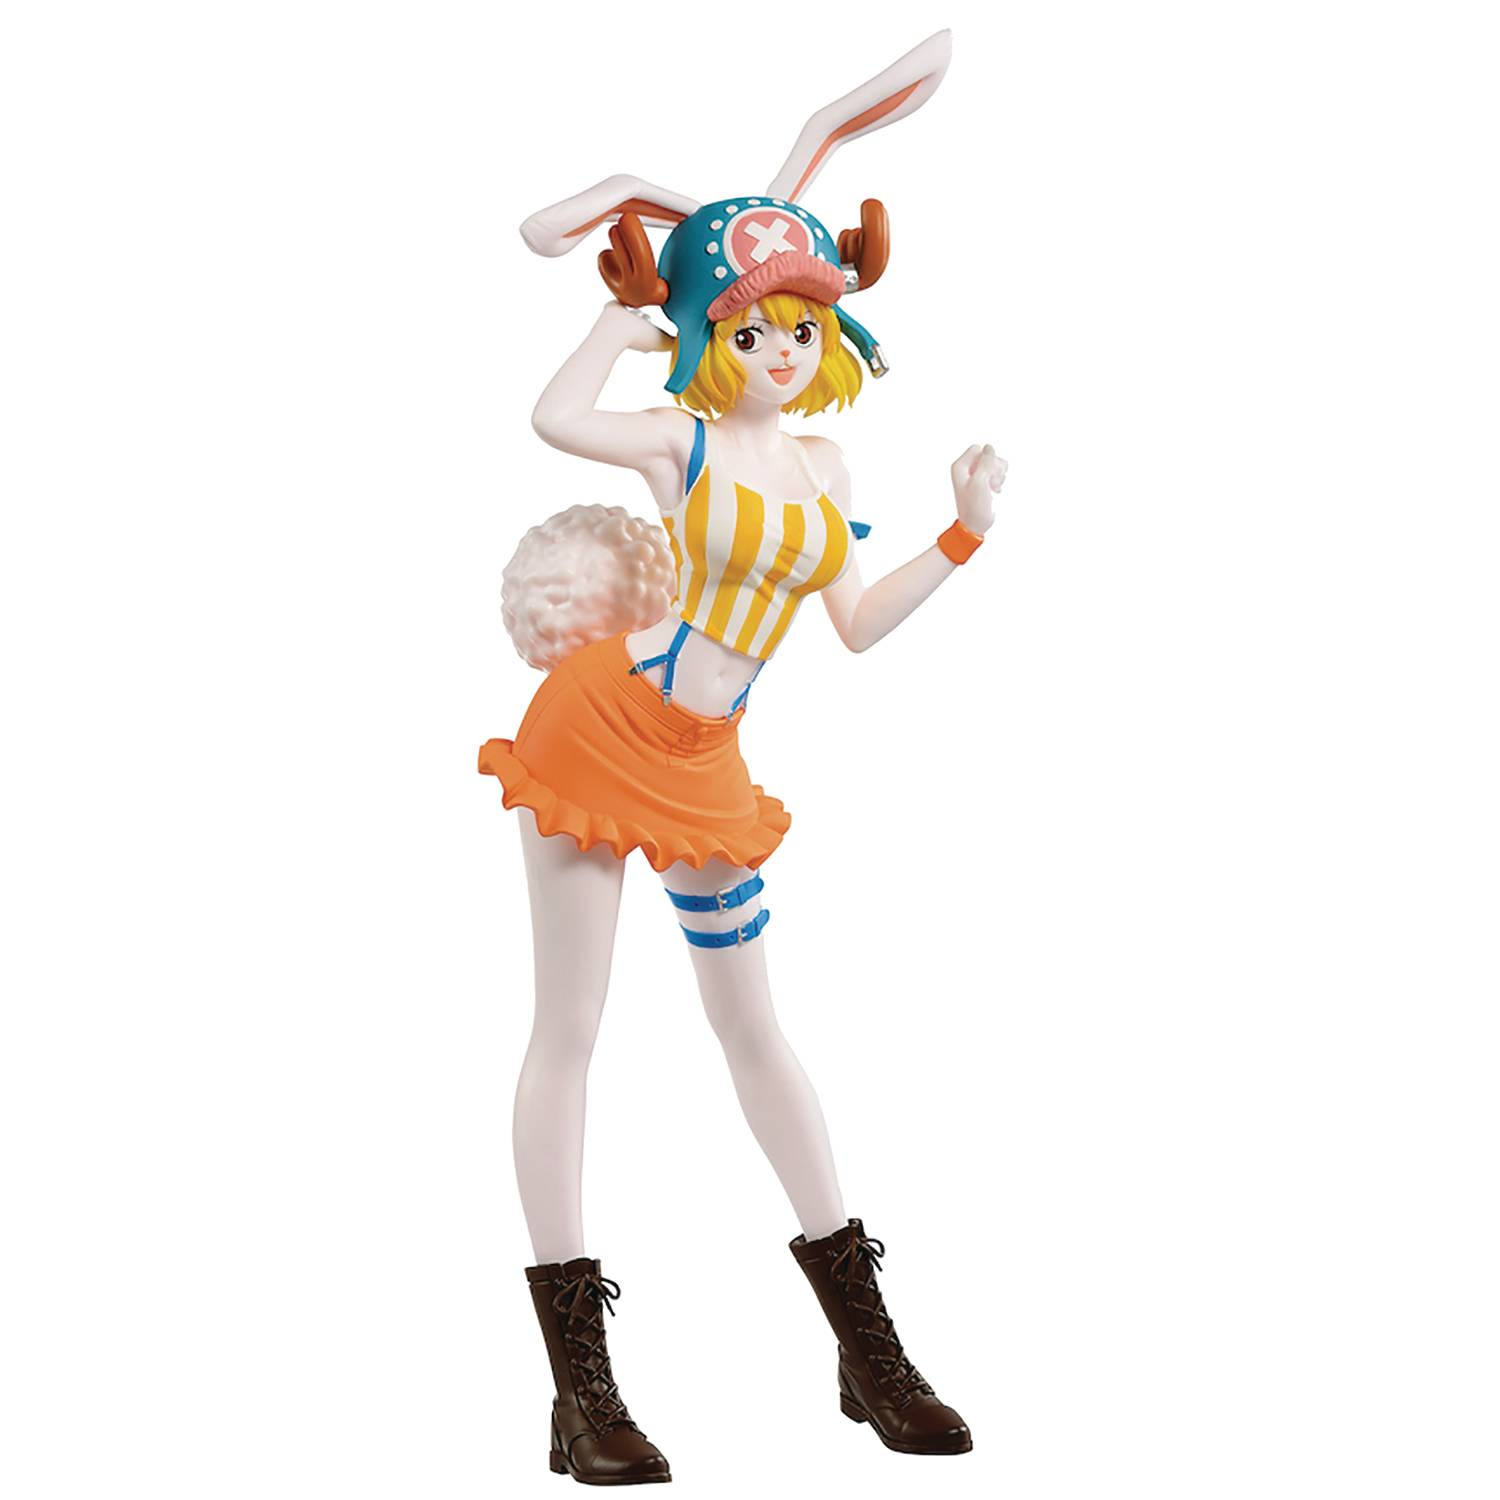 ONE PIECE SWEET STYLE PIRATES CARROT FIG VER 1